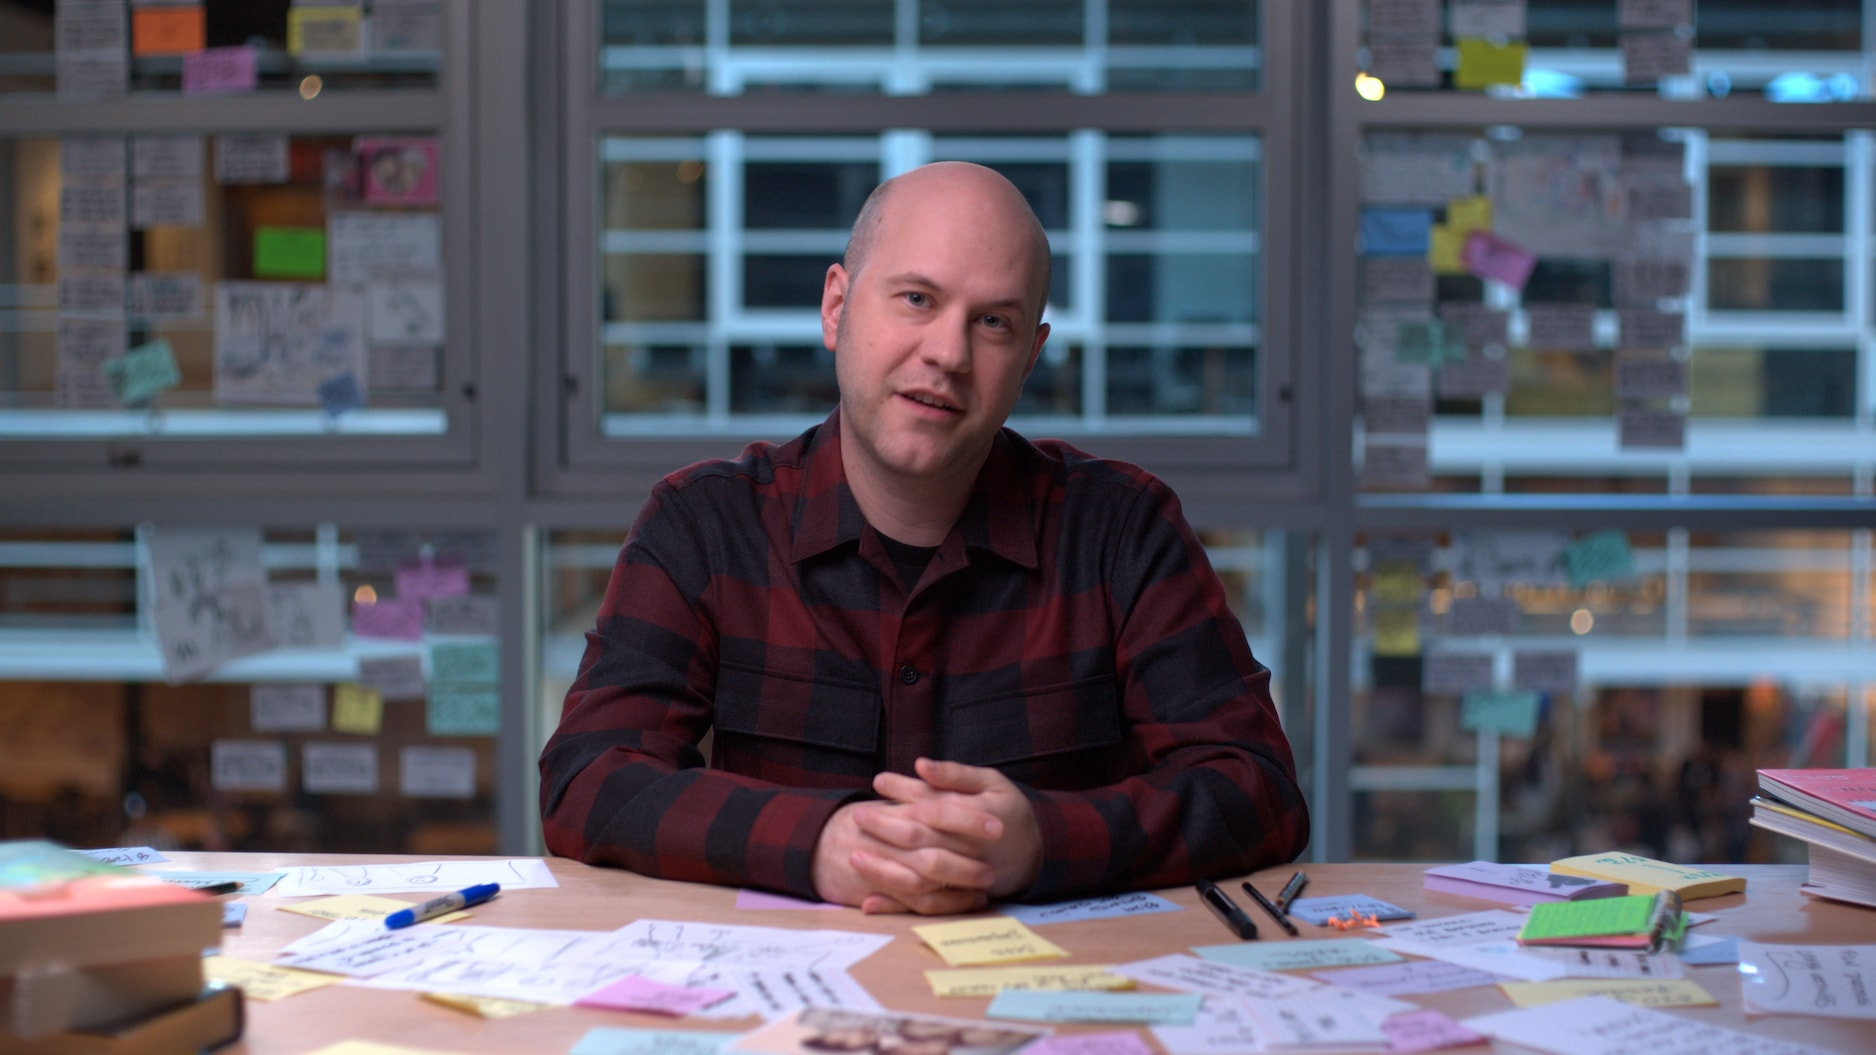 Inside Pixar - Inspired: Dan Scanlon, Where Ideas Come From